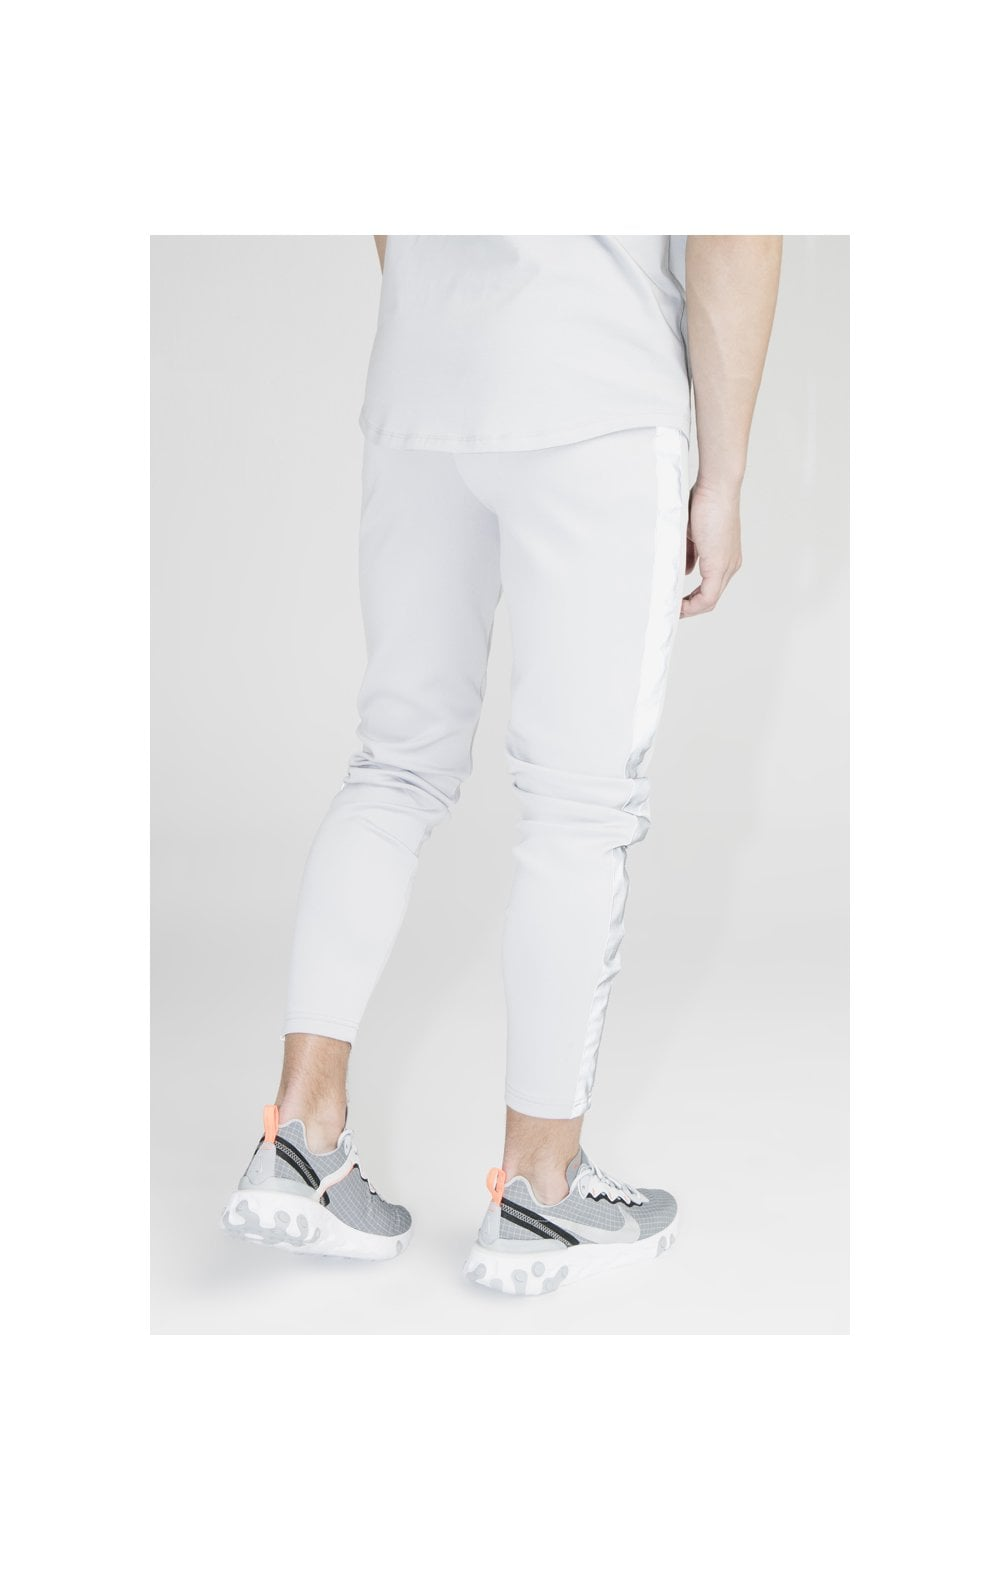 Load image into Gallery viewer, Illusive London Reflect Joggers - Grey (2)